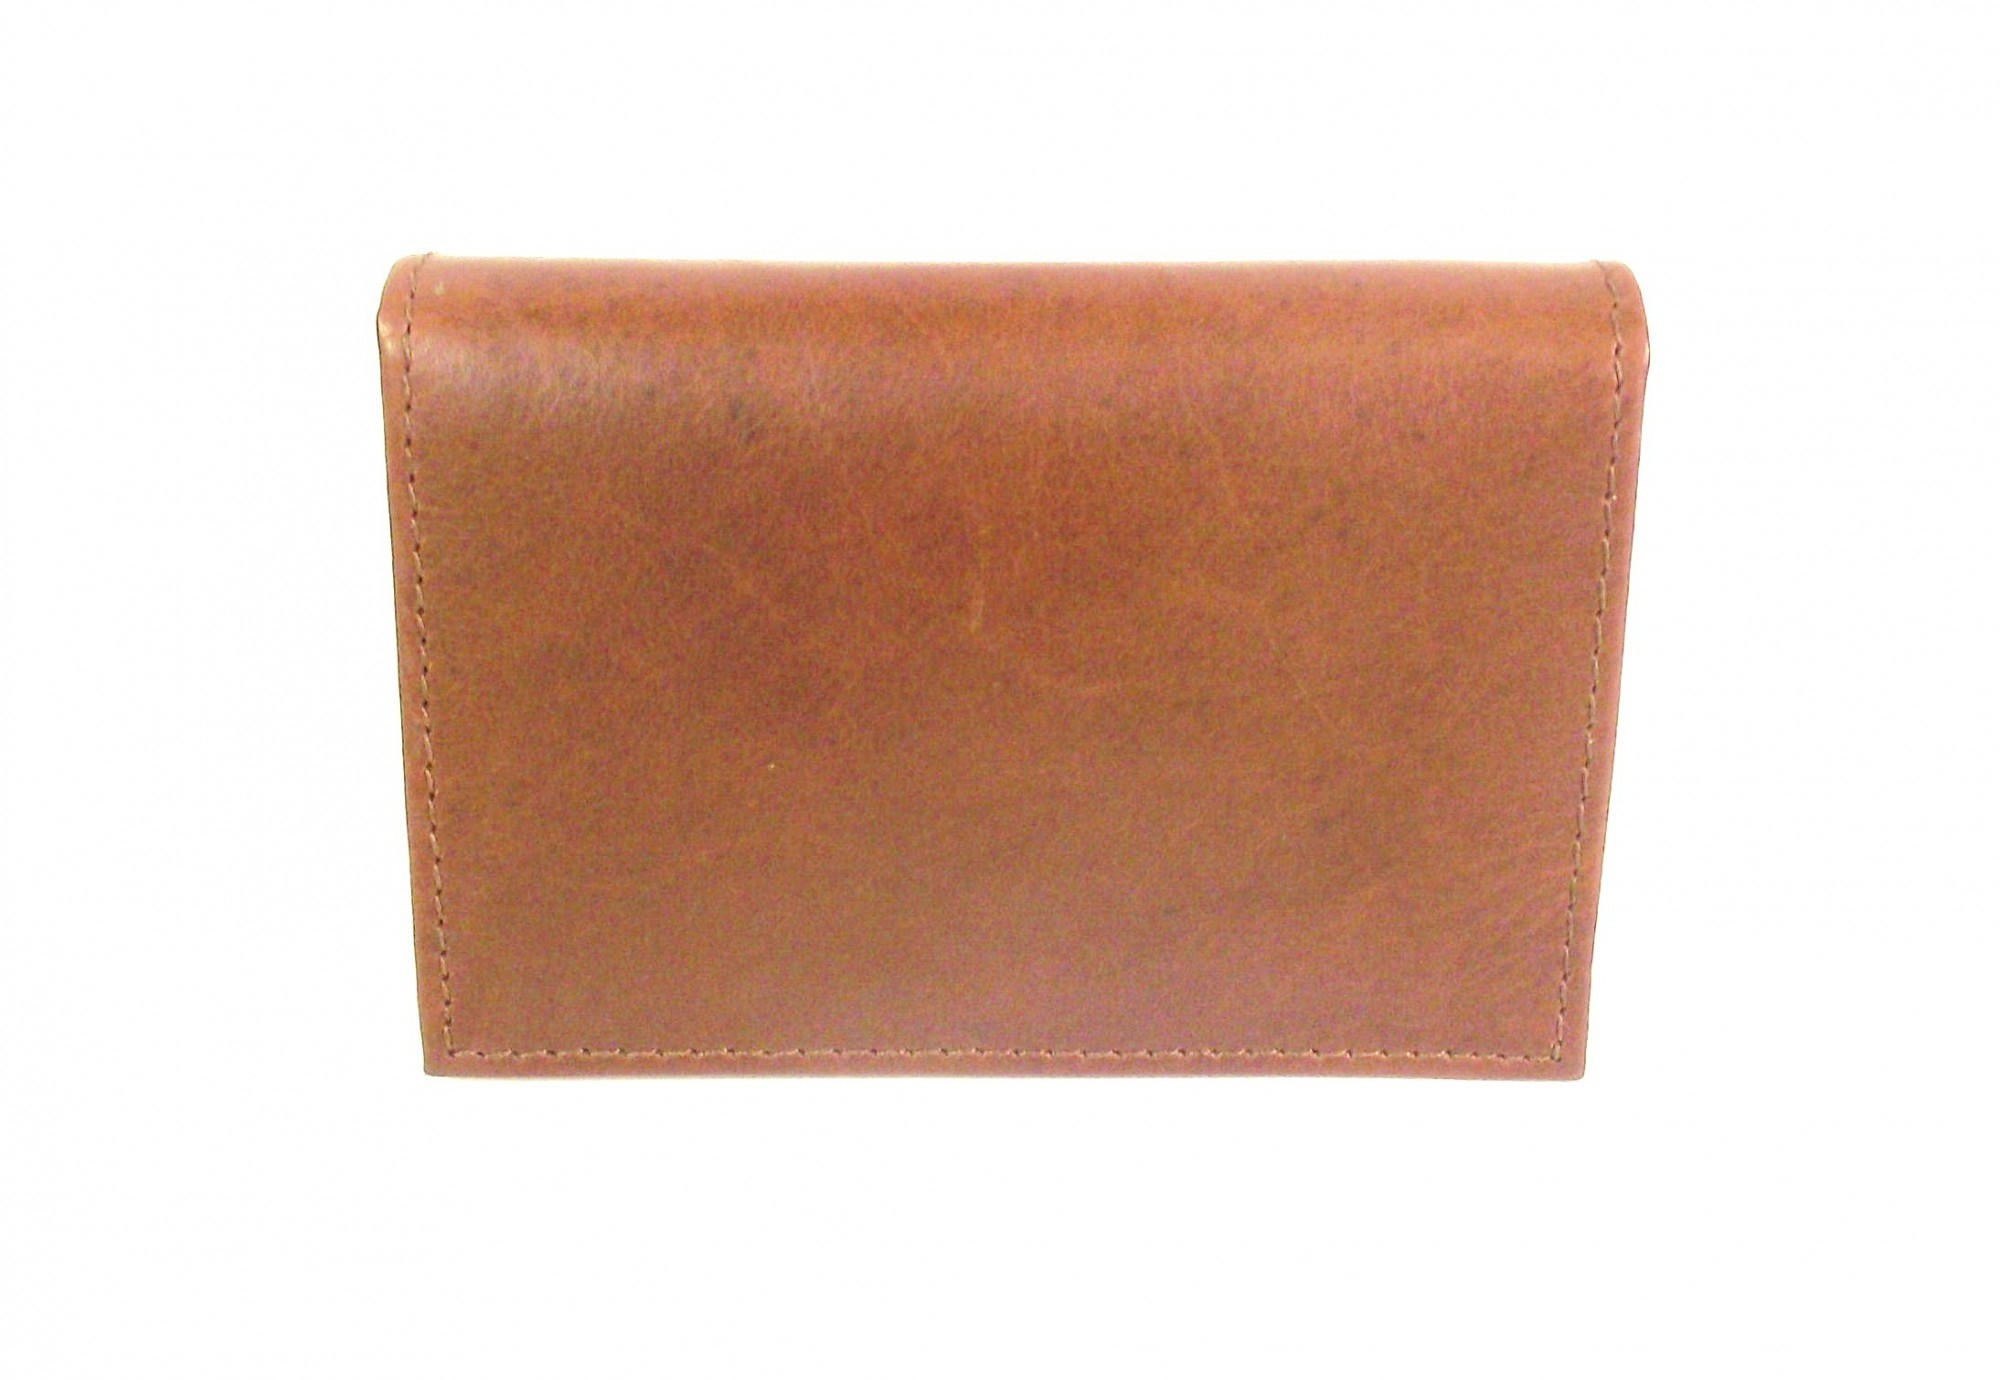 TAN LEATHER ID WALLET